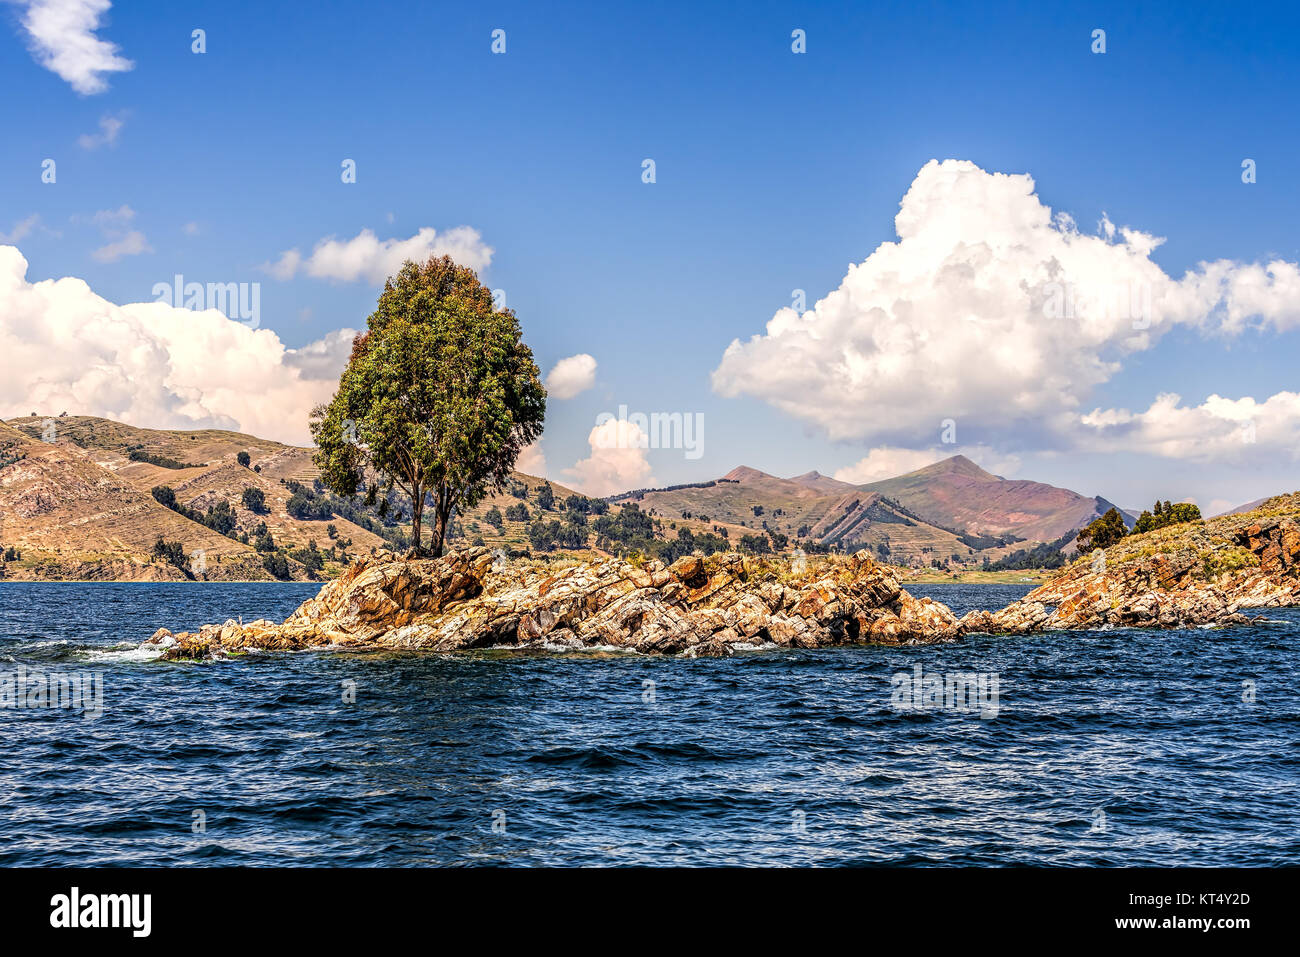 Lonely tree on a small rocky island on a lake under blue skies with fluffy white clouds Stock Photo